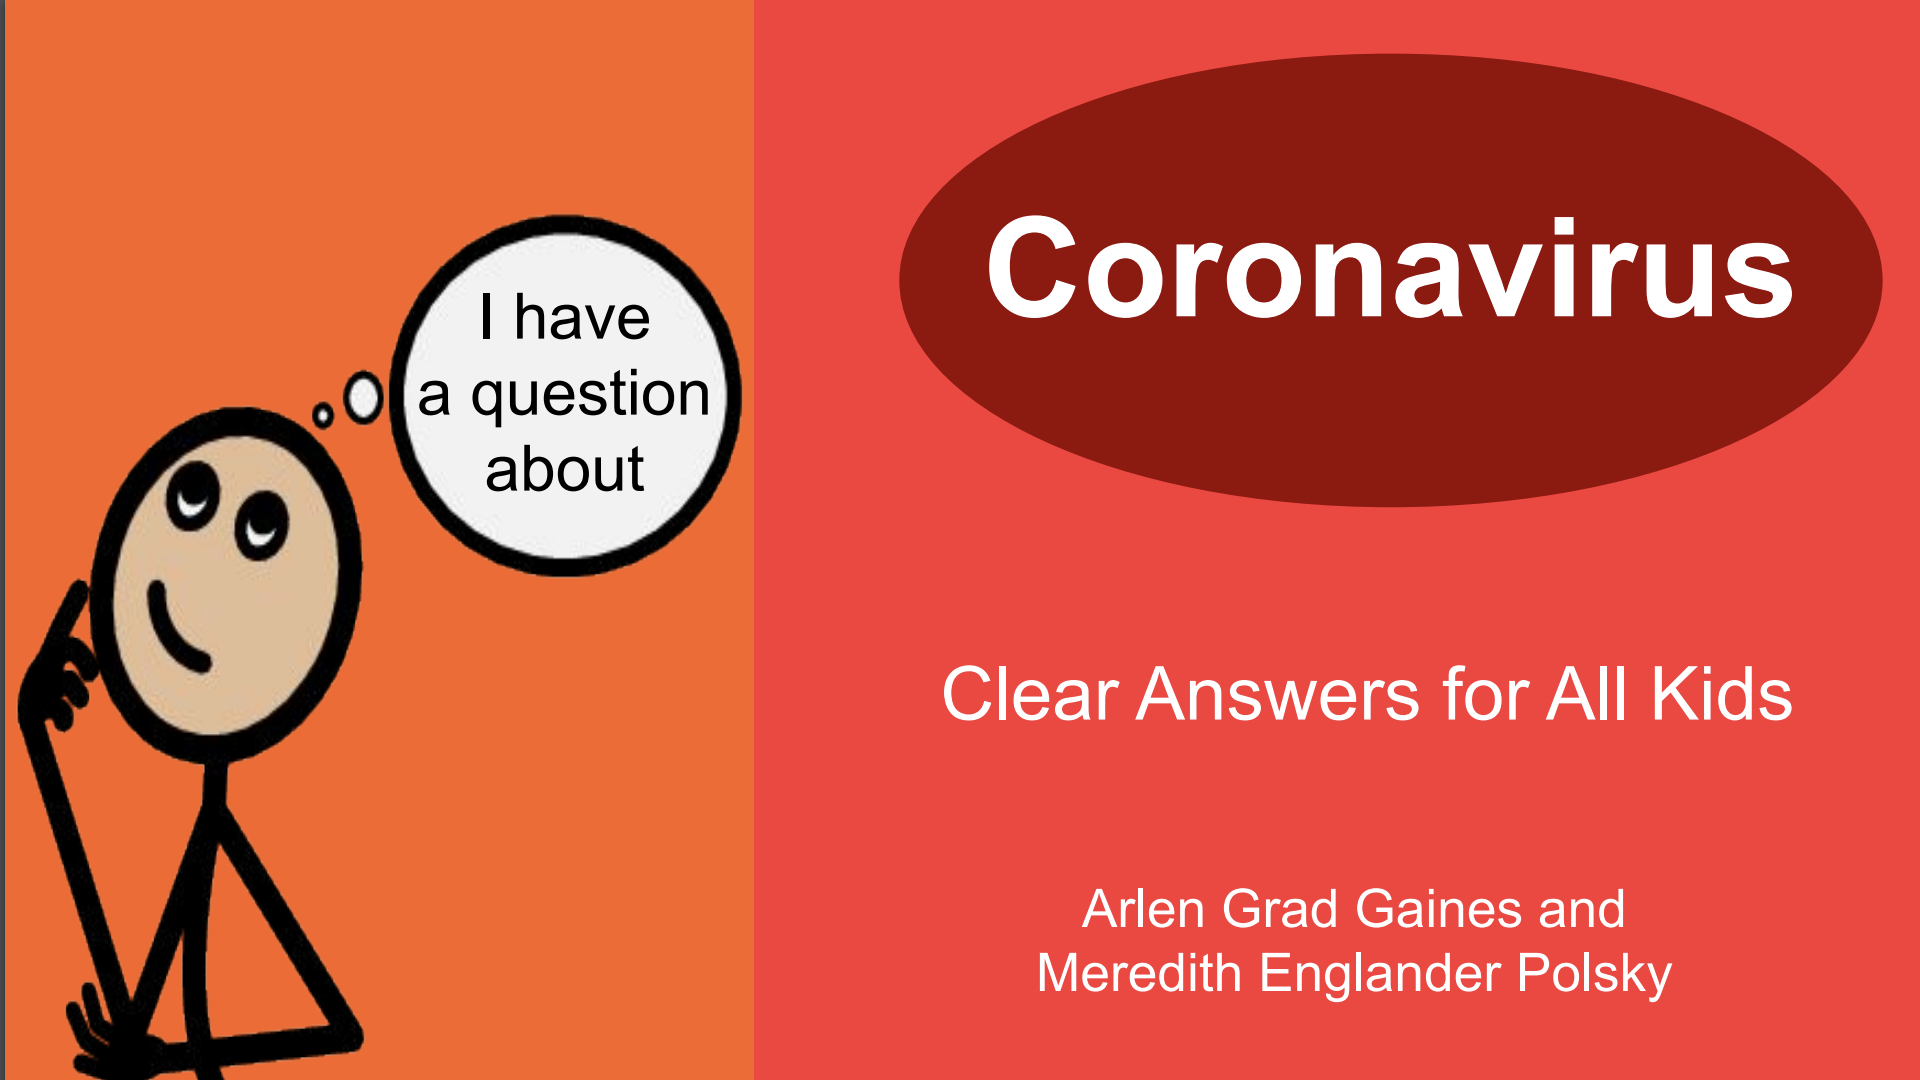 Coronavirus: Clear Answers for All Kids